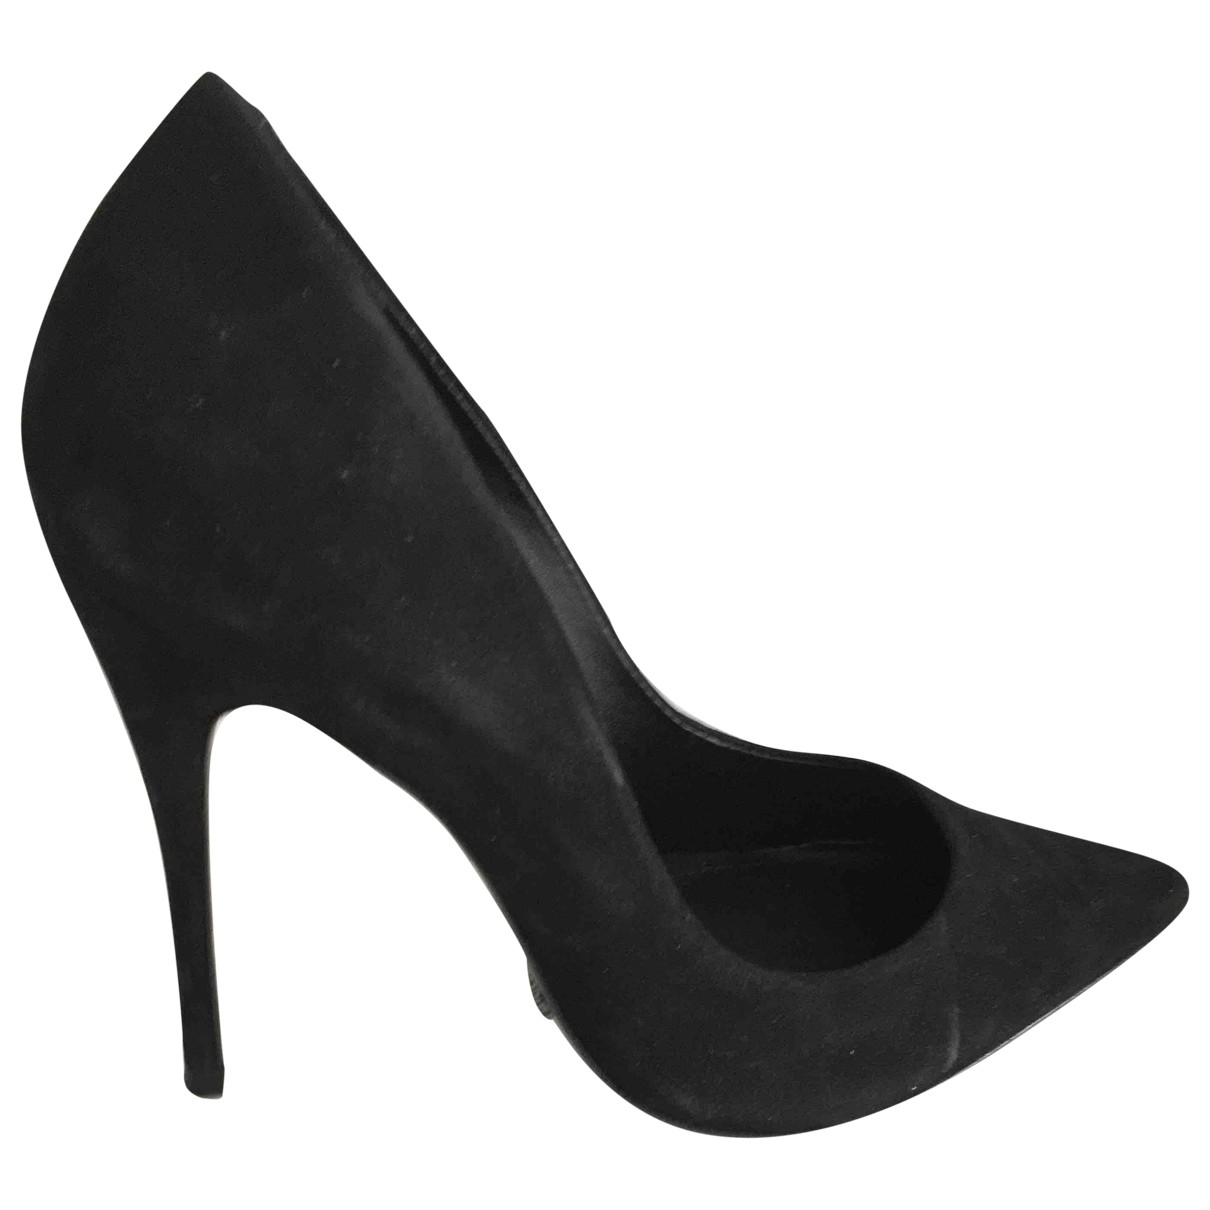 Schutz \N Black Suede Heels for Women 37 EU